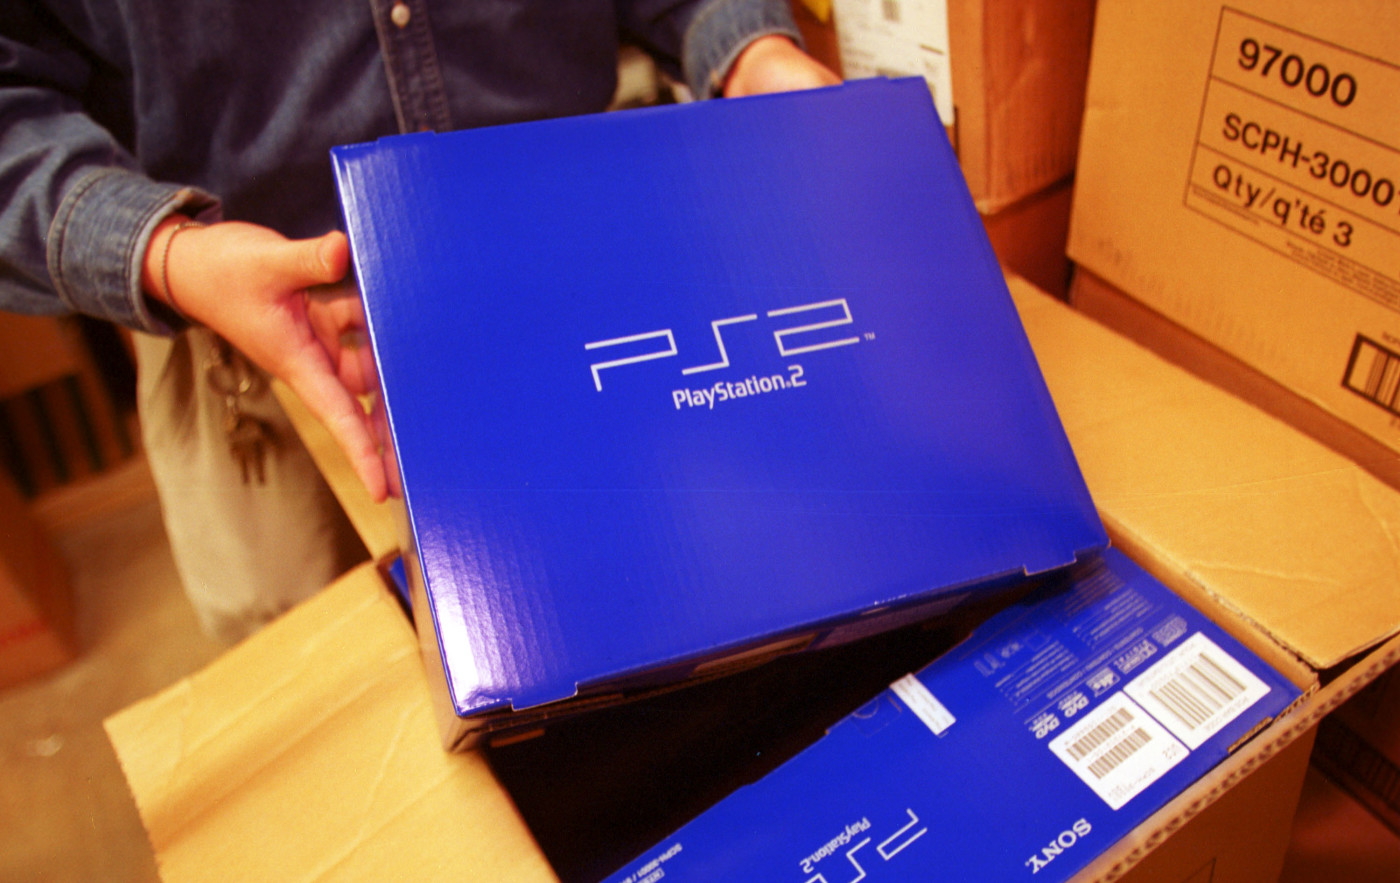 This is a photo of the PS2 in a box.